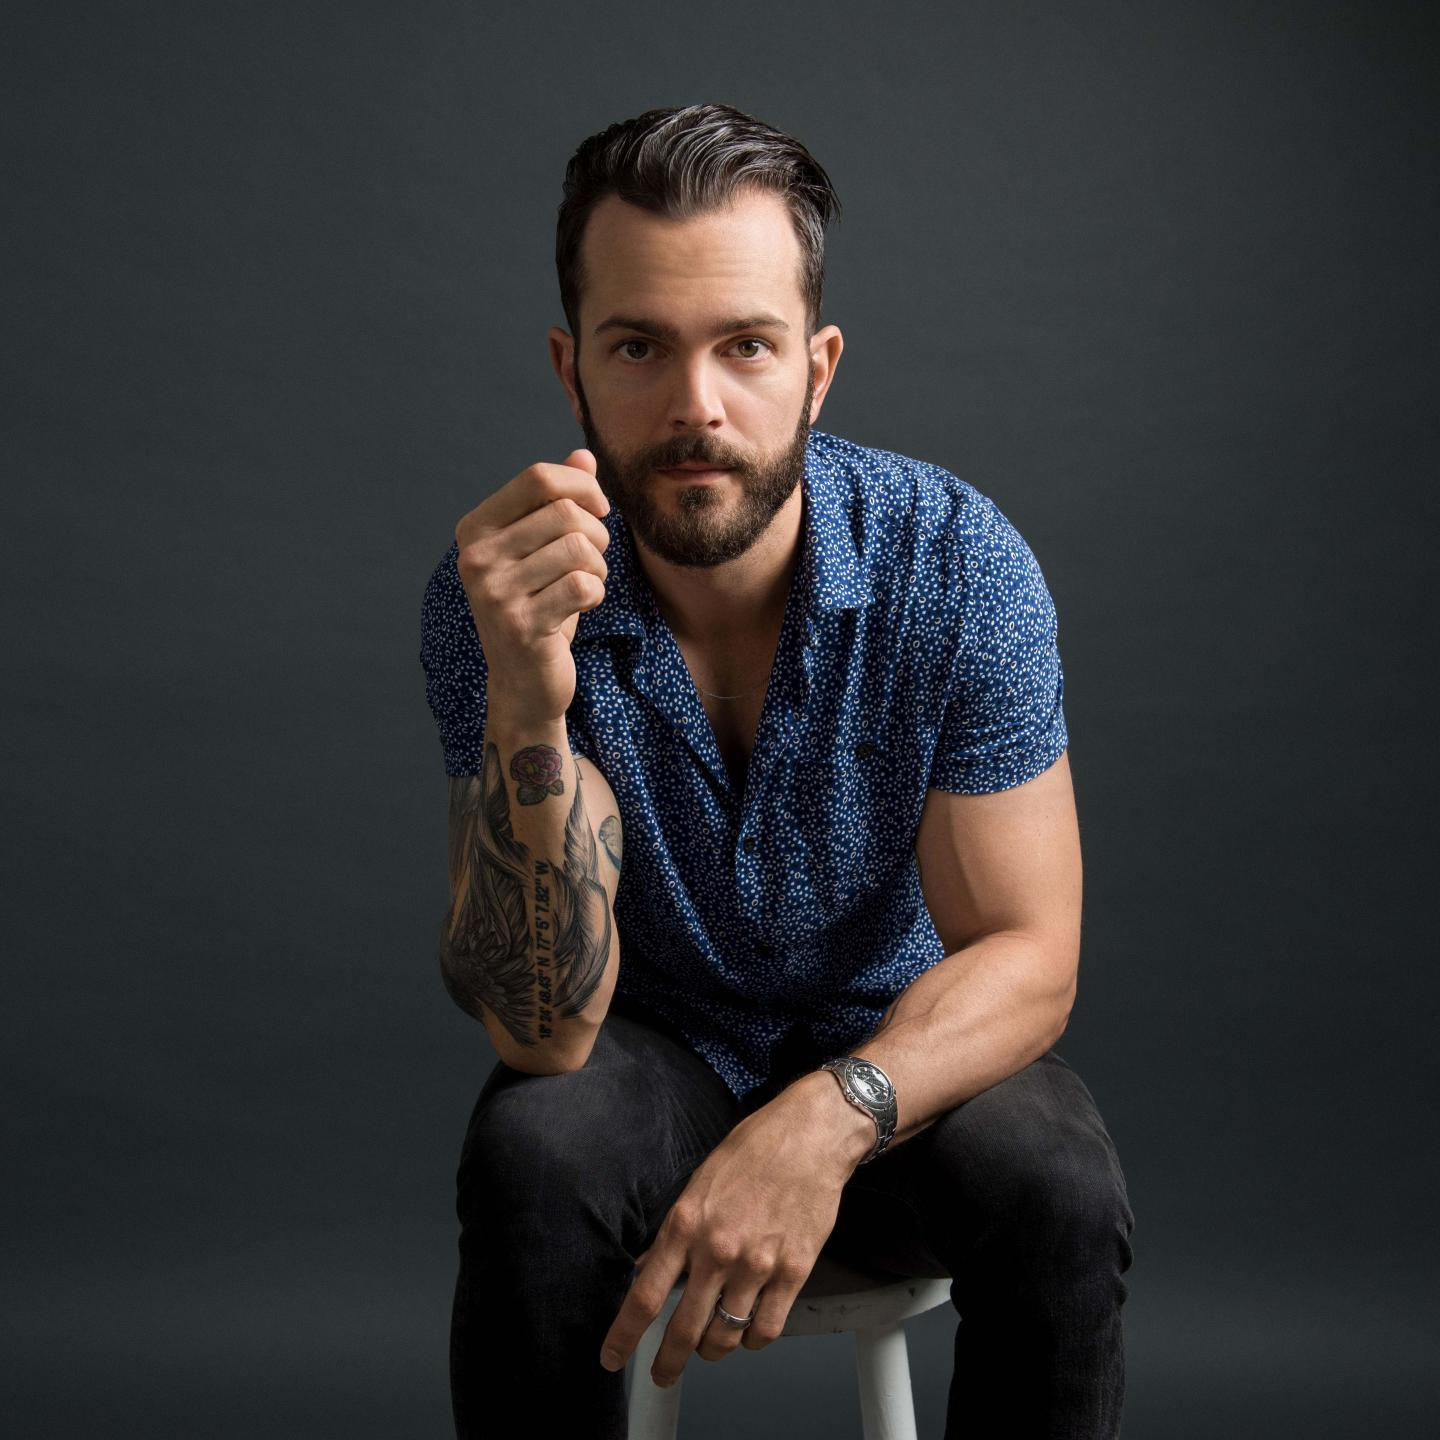 ryan kinder sitting on a stool against a gray background